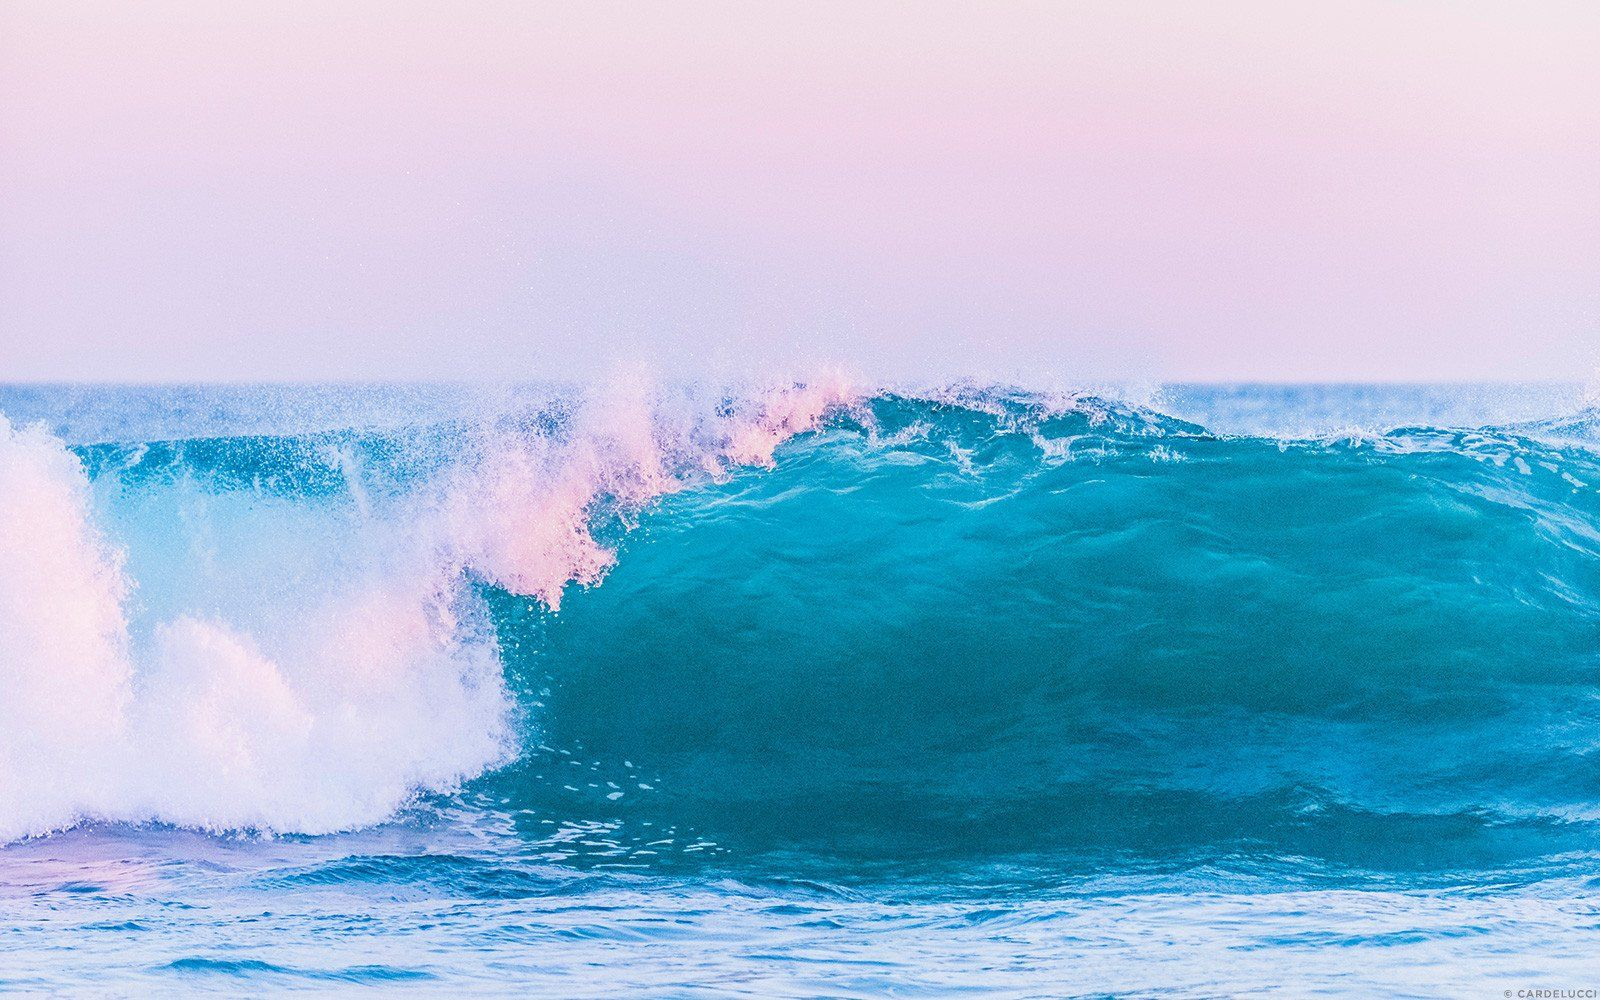 Vibrant Pink And Blue Hues Of The Ocean • Photo By